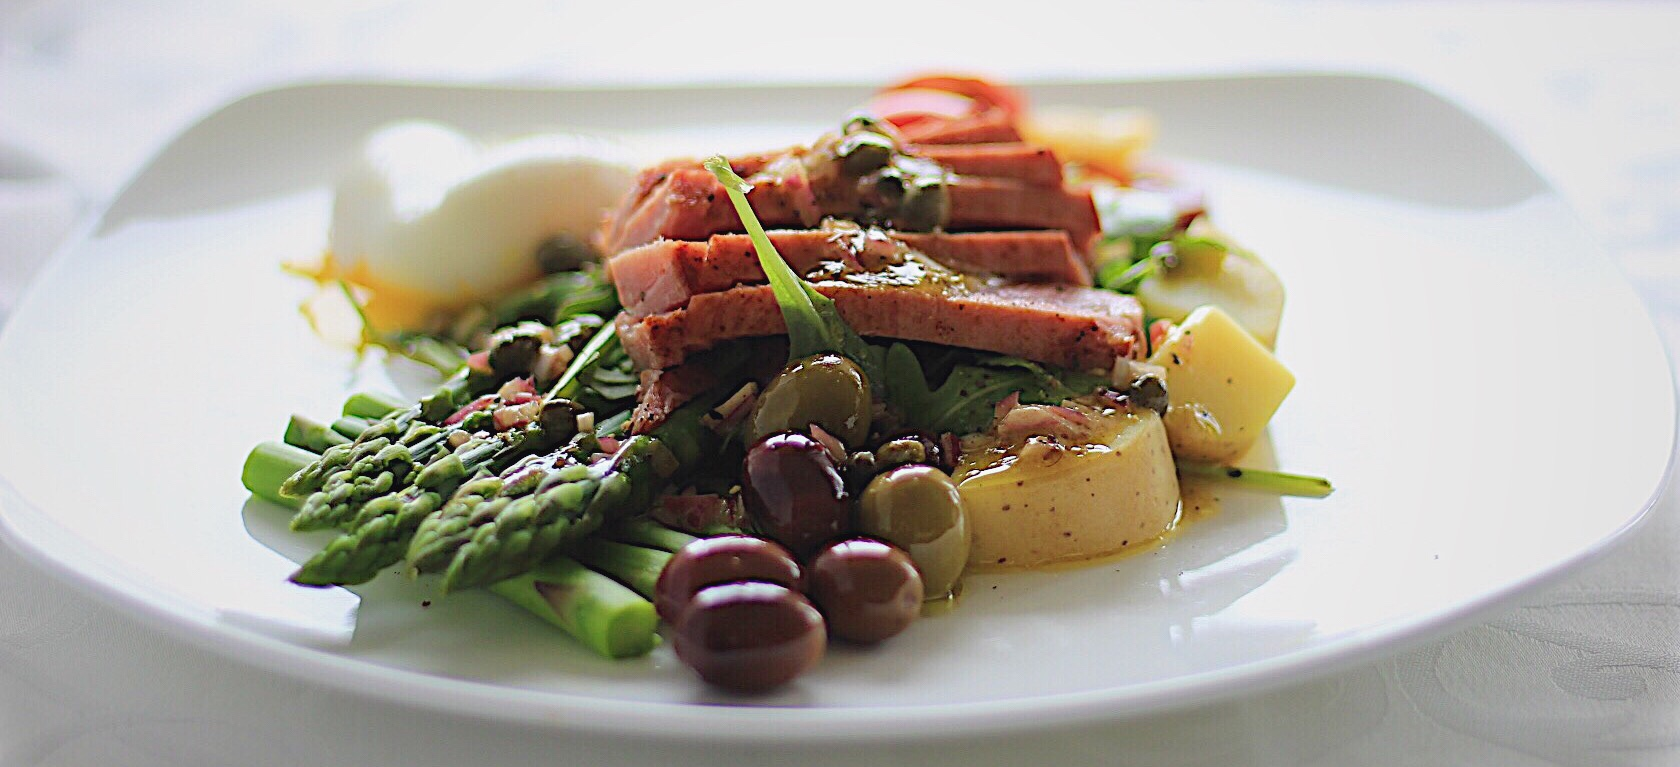 Seared Tuna Nicoise Salad with Asparagus and Arugula